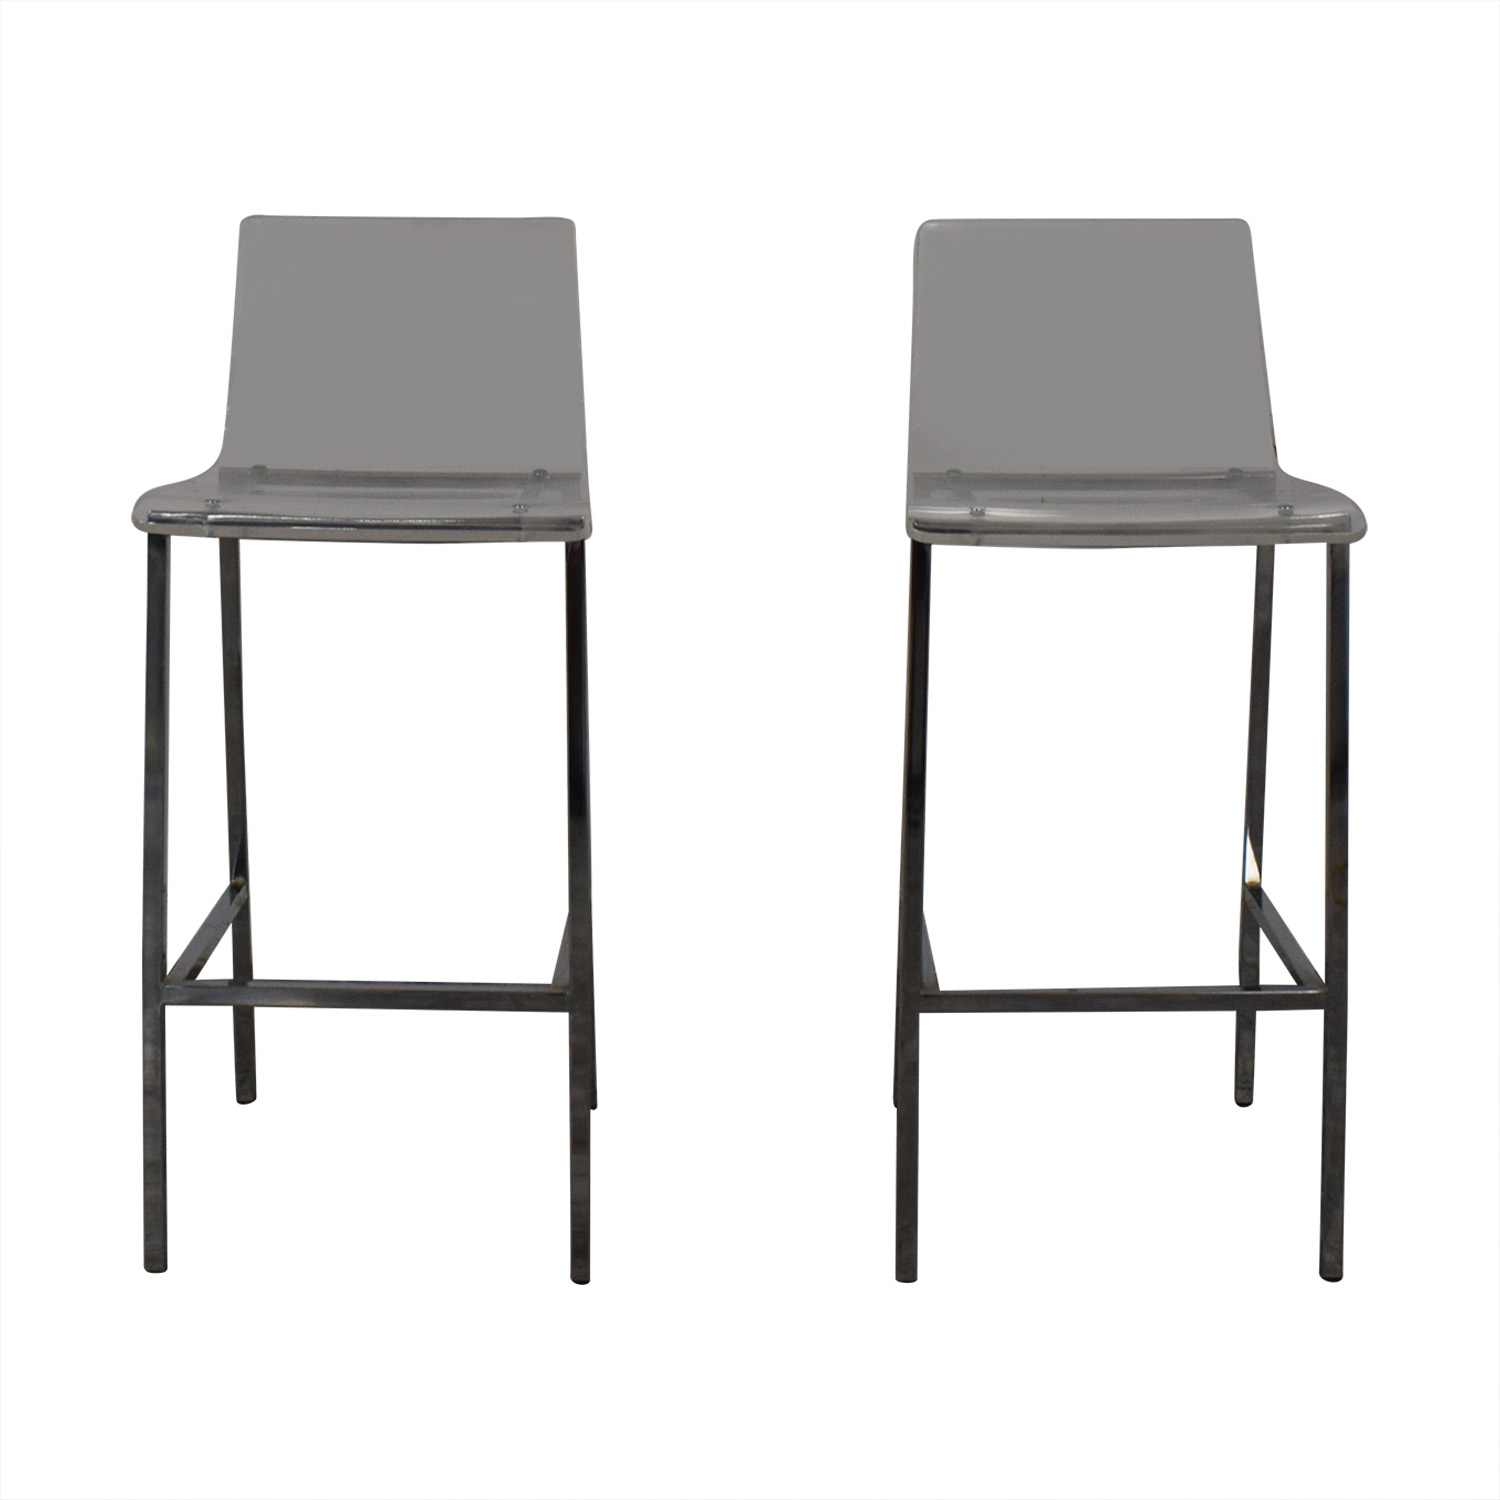 Bar Stool Chairs 67 Off Cb2 Cb2 Bar Stools Chairs